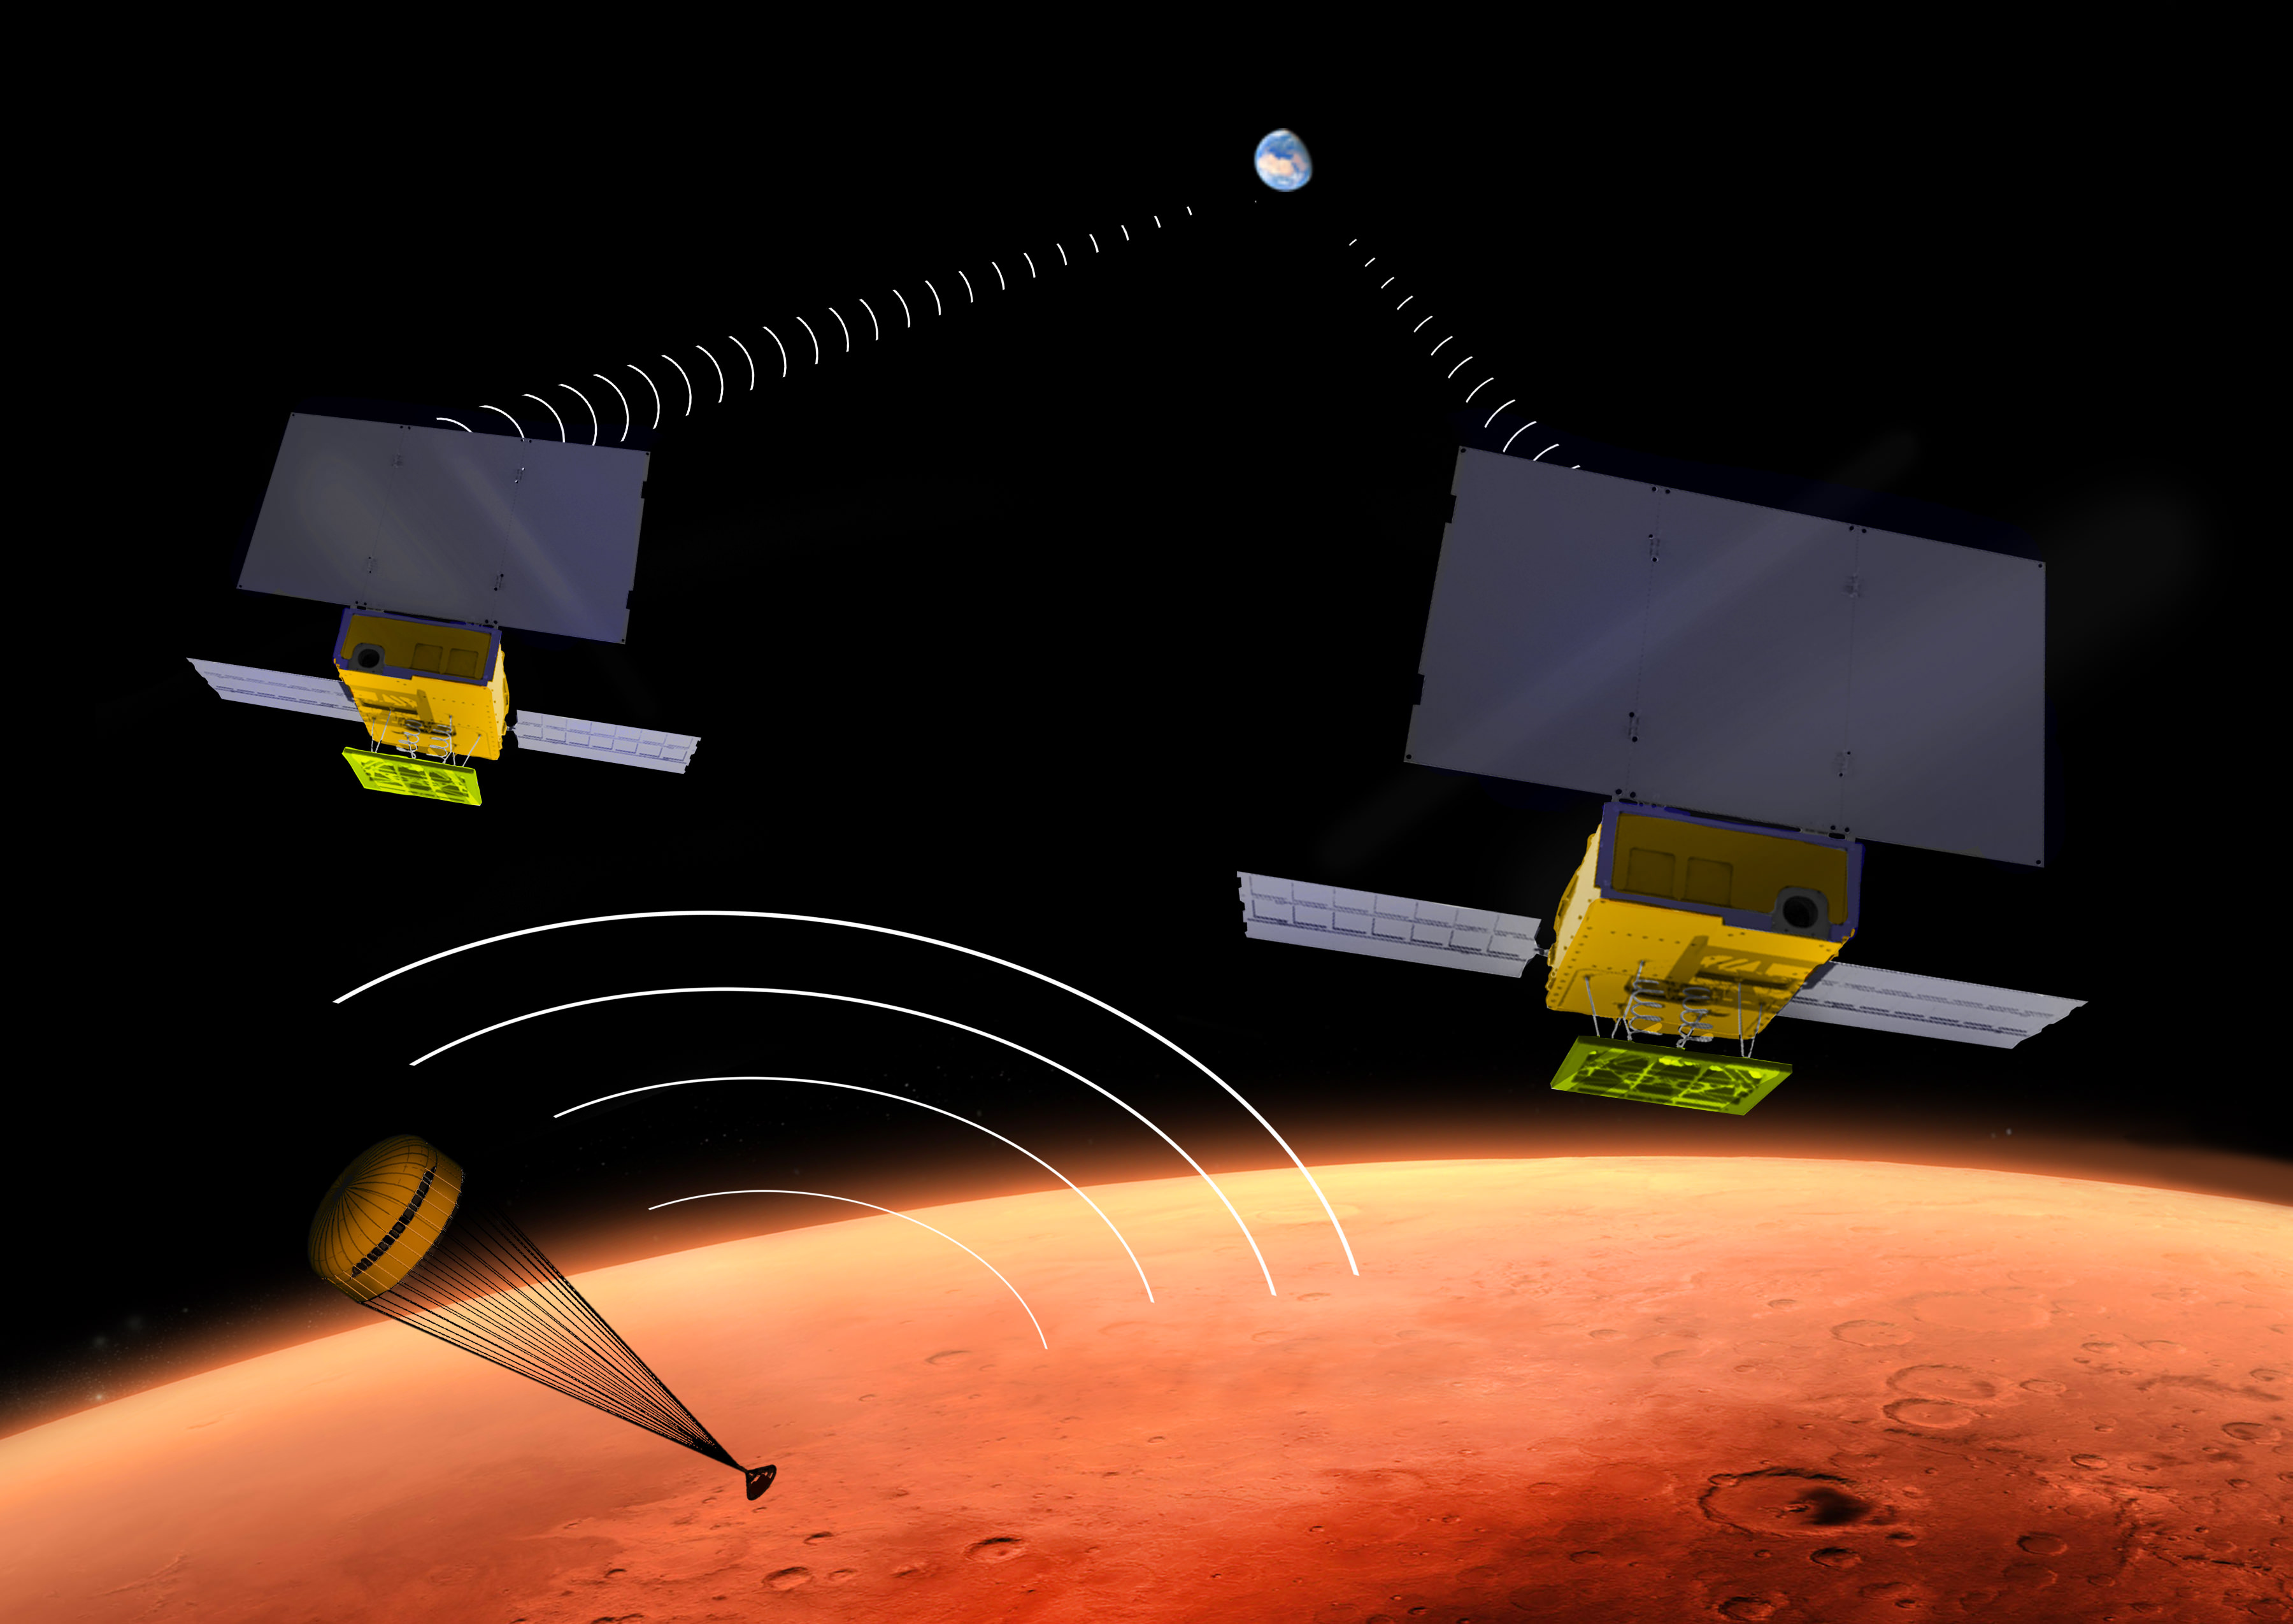 NASA's two small MarCO CubeSats will be flying past Mars in 2016 just as NASA's next Mars lander, InSight, is descending to land on the surface. MarCO, for Mars Cube One, will provide an experimental communications relay to inform Earth quickly about the landing.  Credits: NASA/JPL-Caltech